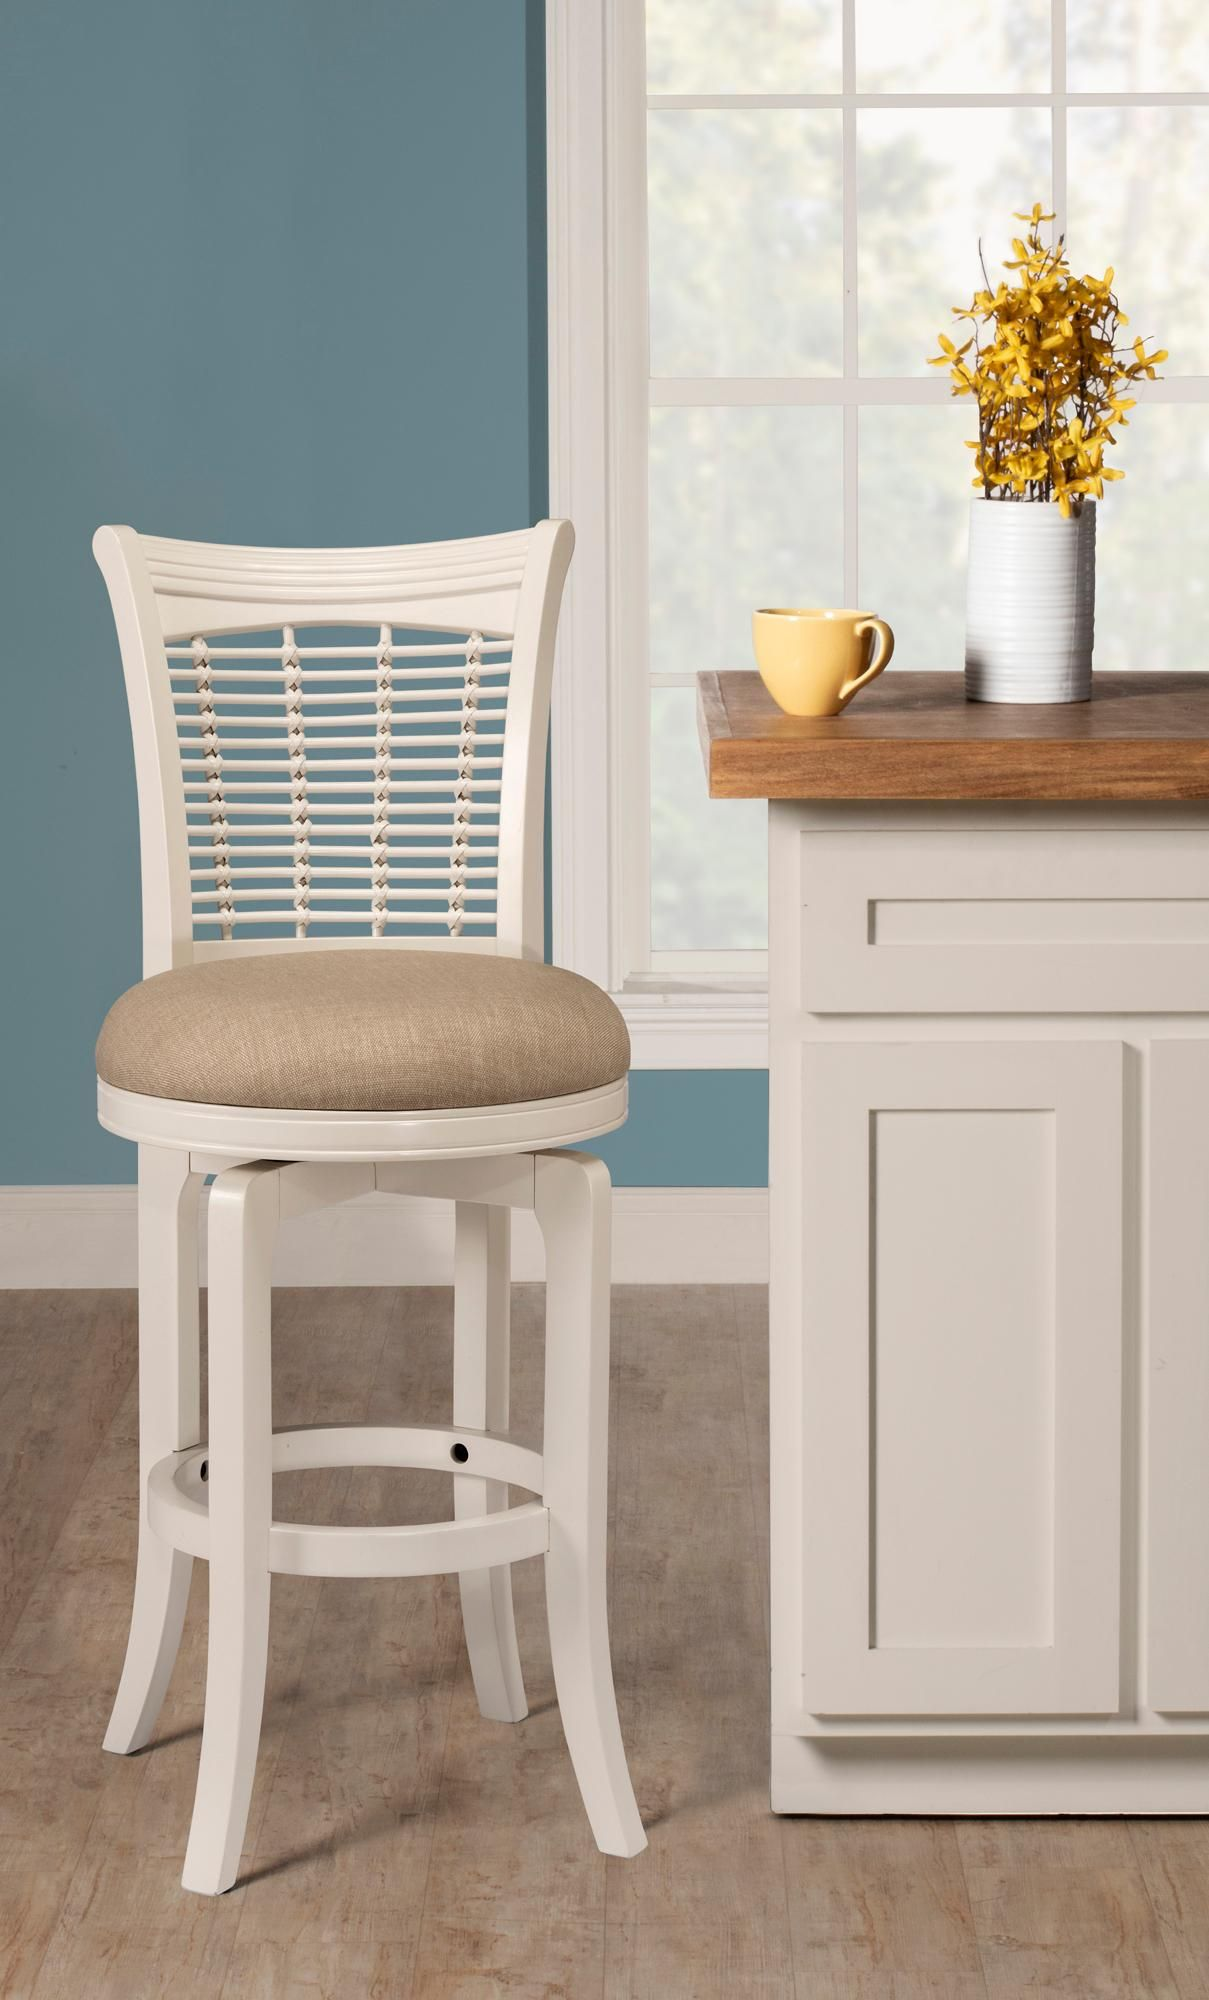 Bayberry 24 Inch Off White Woven Fabric Swivel Counter Stool